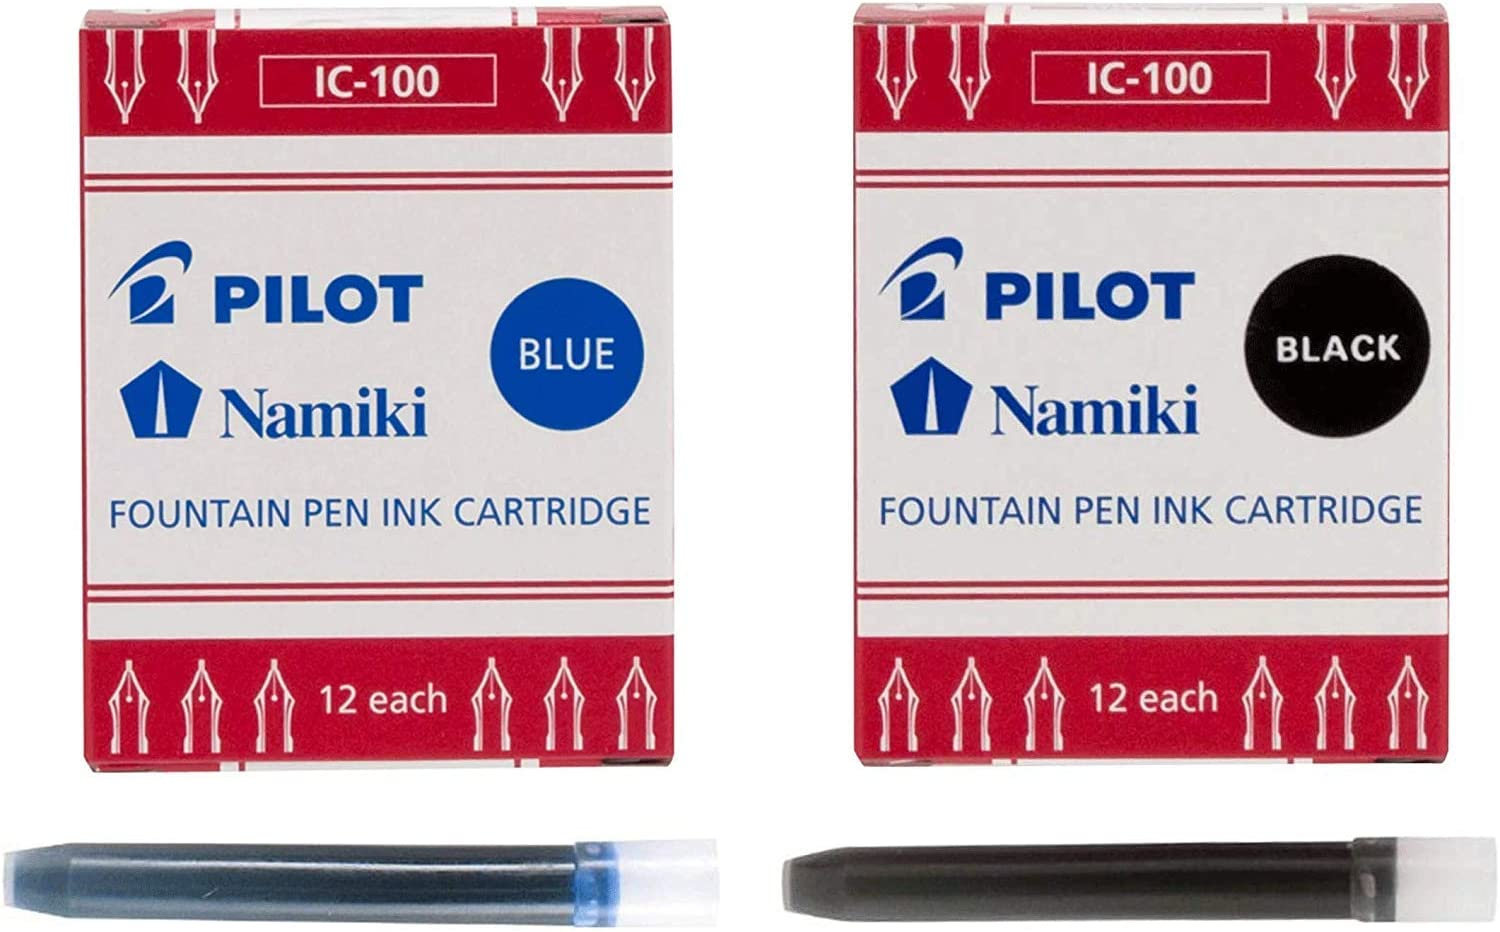 Pilot Namiki IC100 Beauty products Fountain Pen Ink Super Special SALE held Black 24 Pack Cartridge of